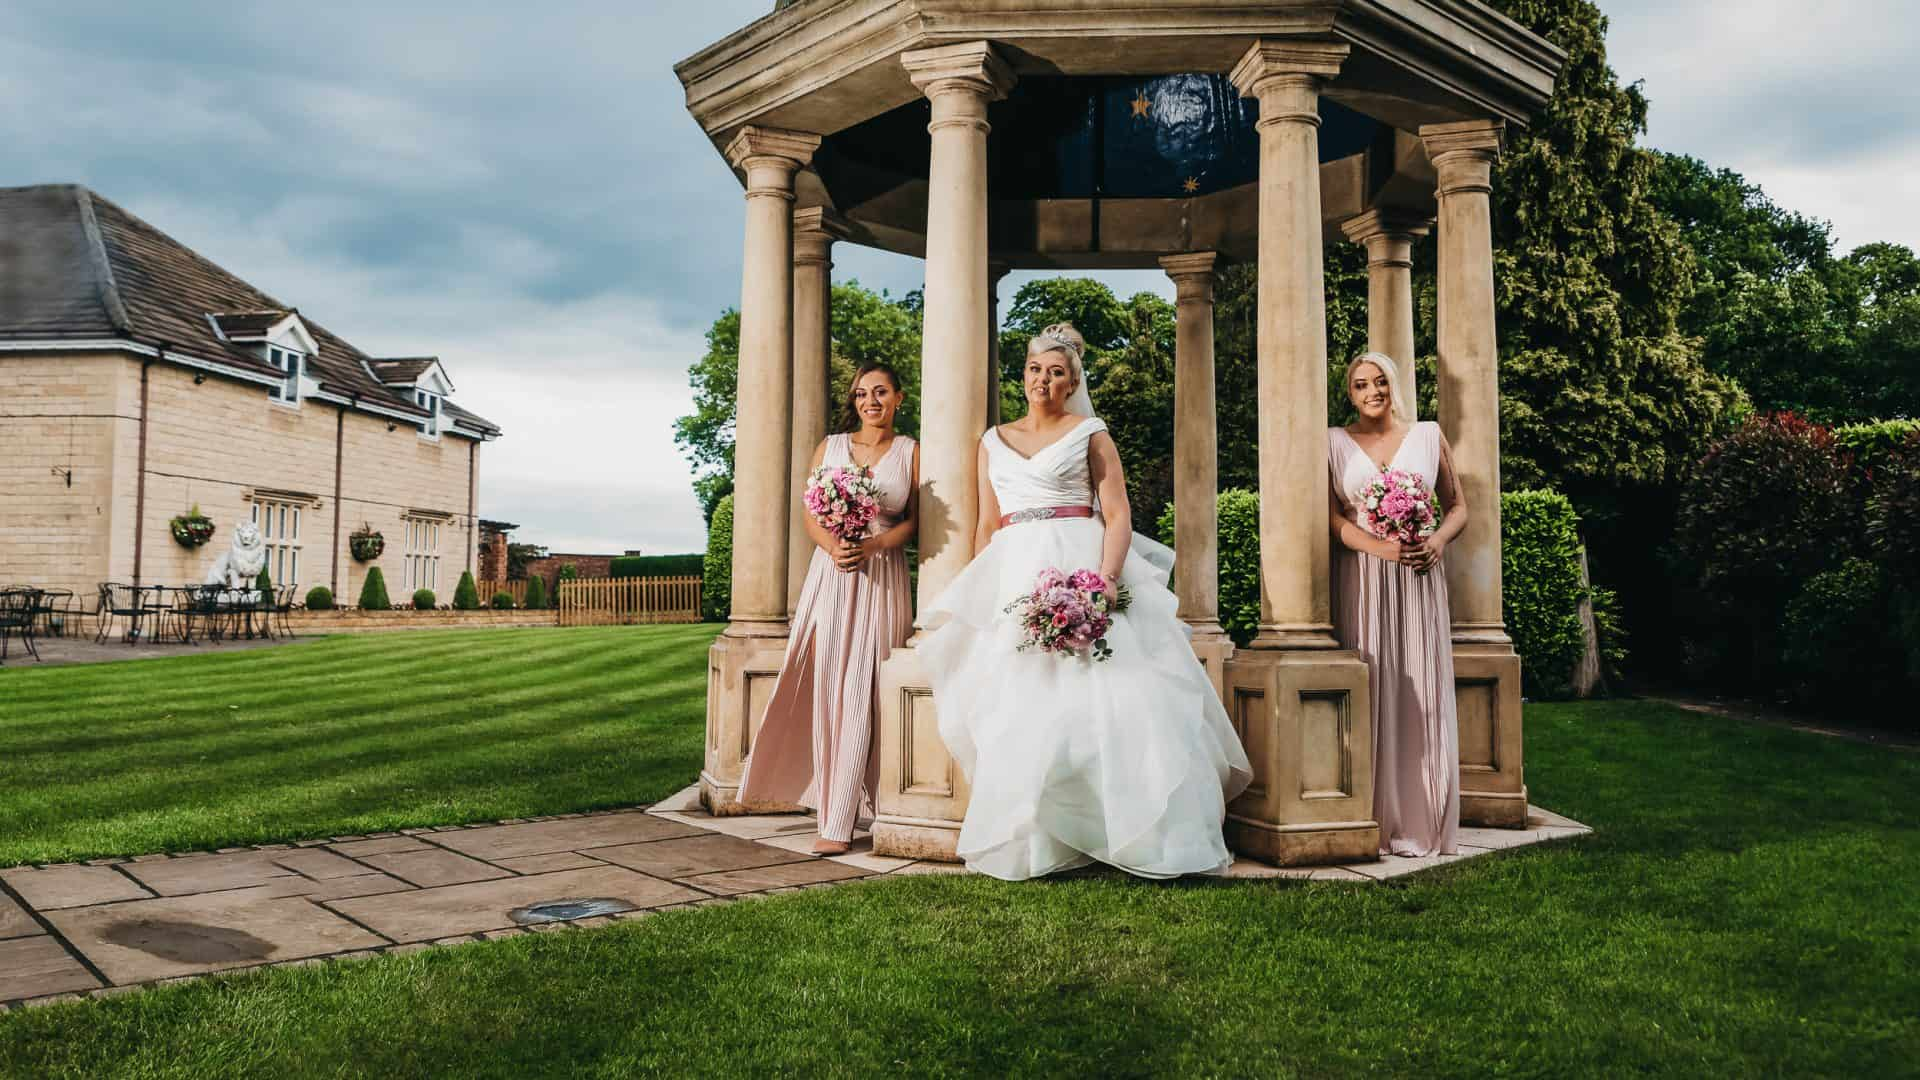 Bride with her two brides maids posing for a picture under the gazebo at rogerthorpe manor